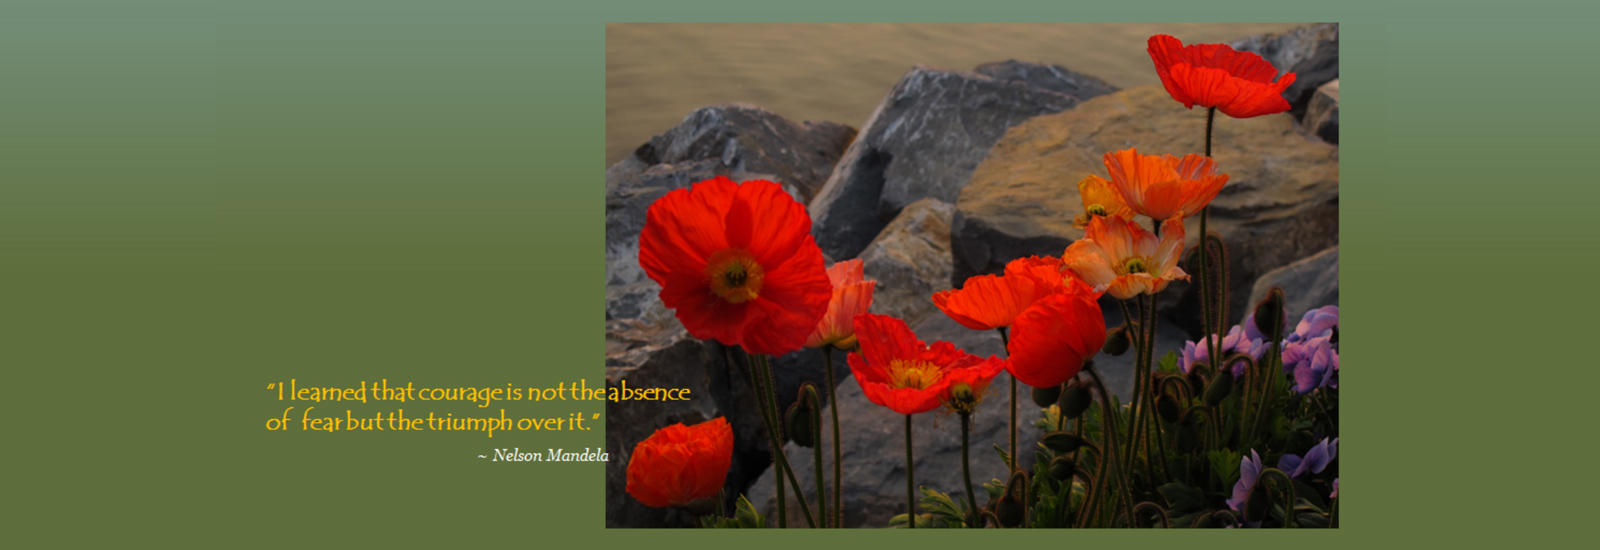 english_slide_1-poppies-and-rocks